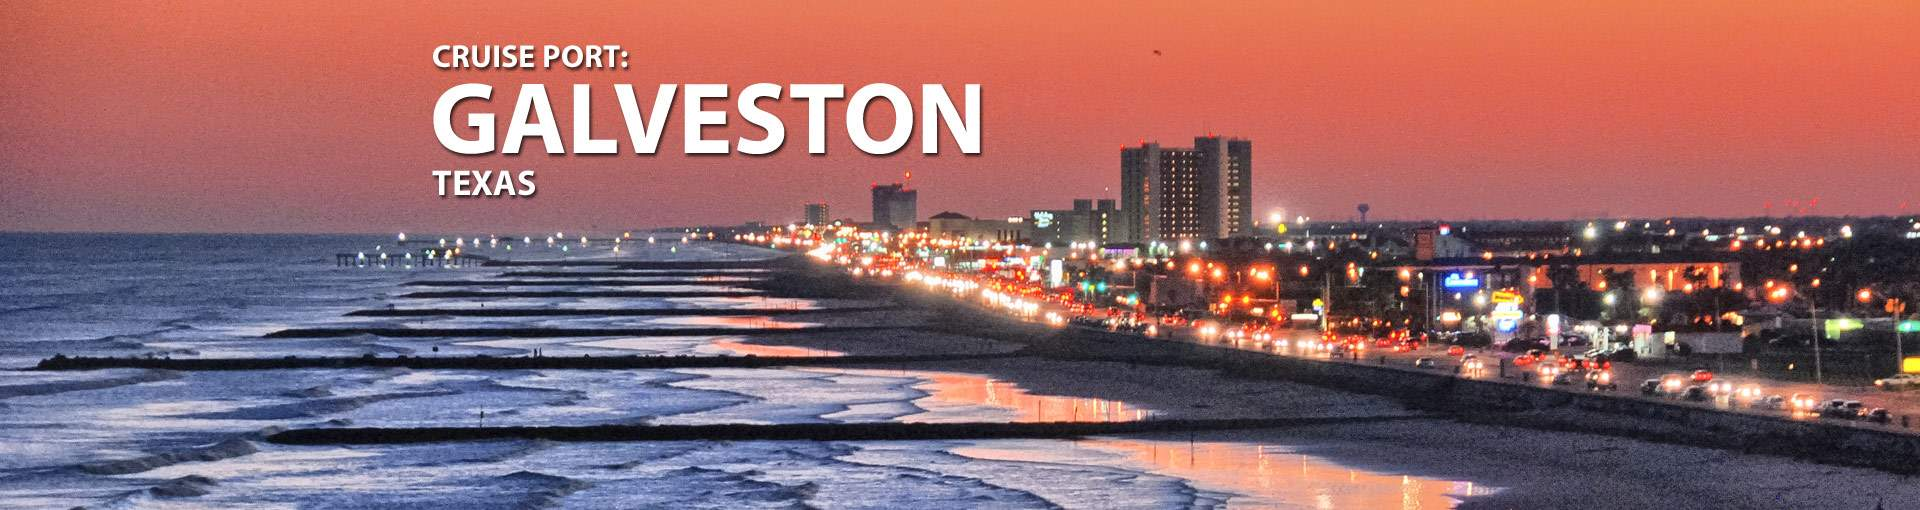 Cruise Port: Galveston, Texas